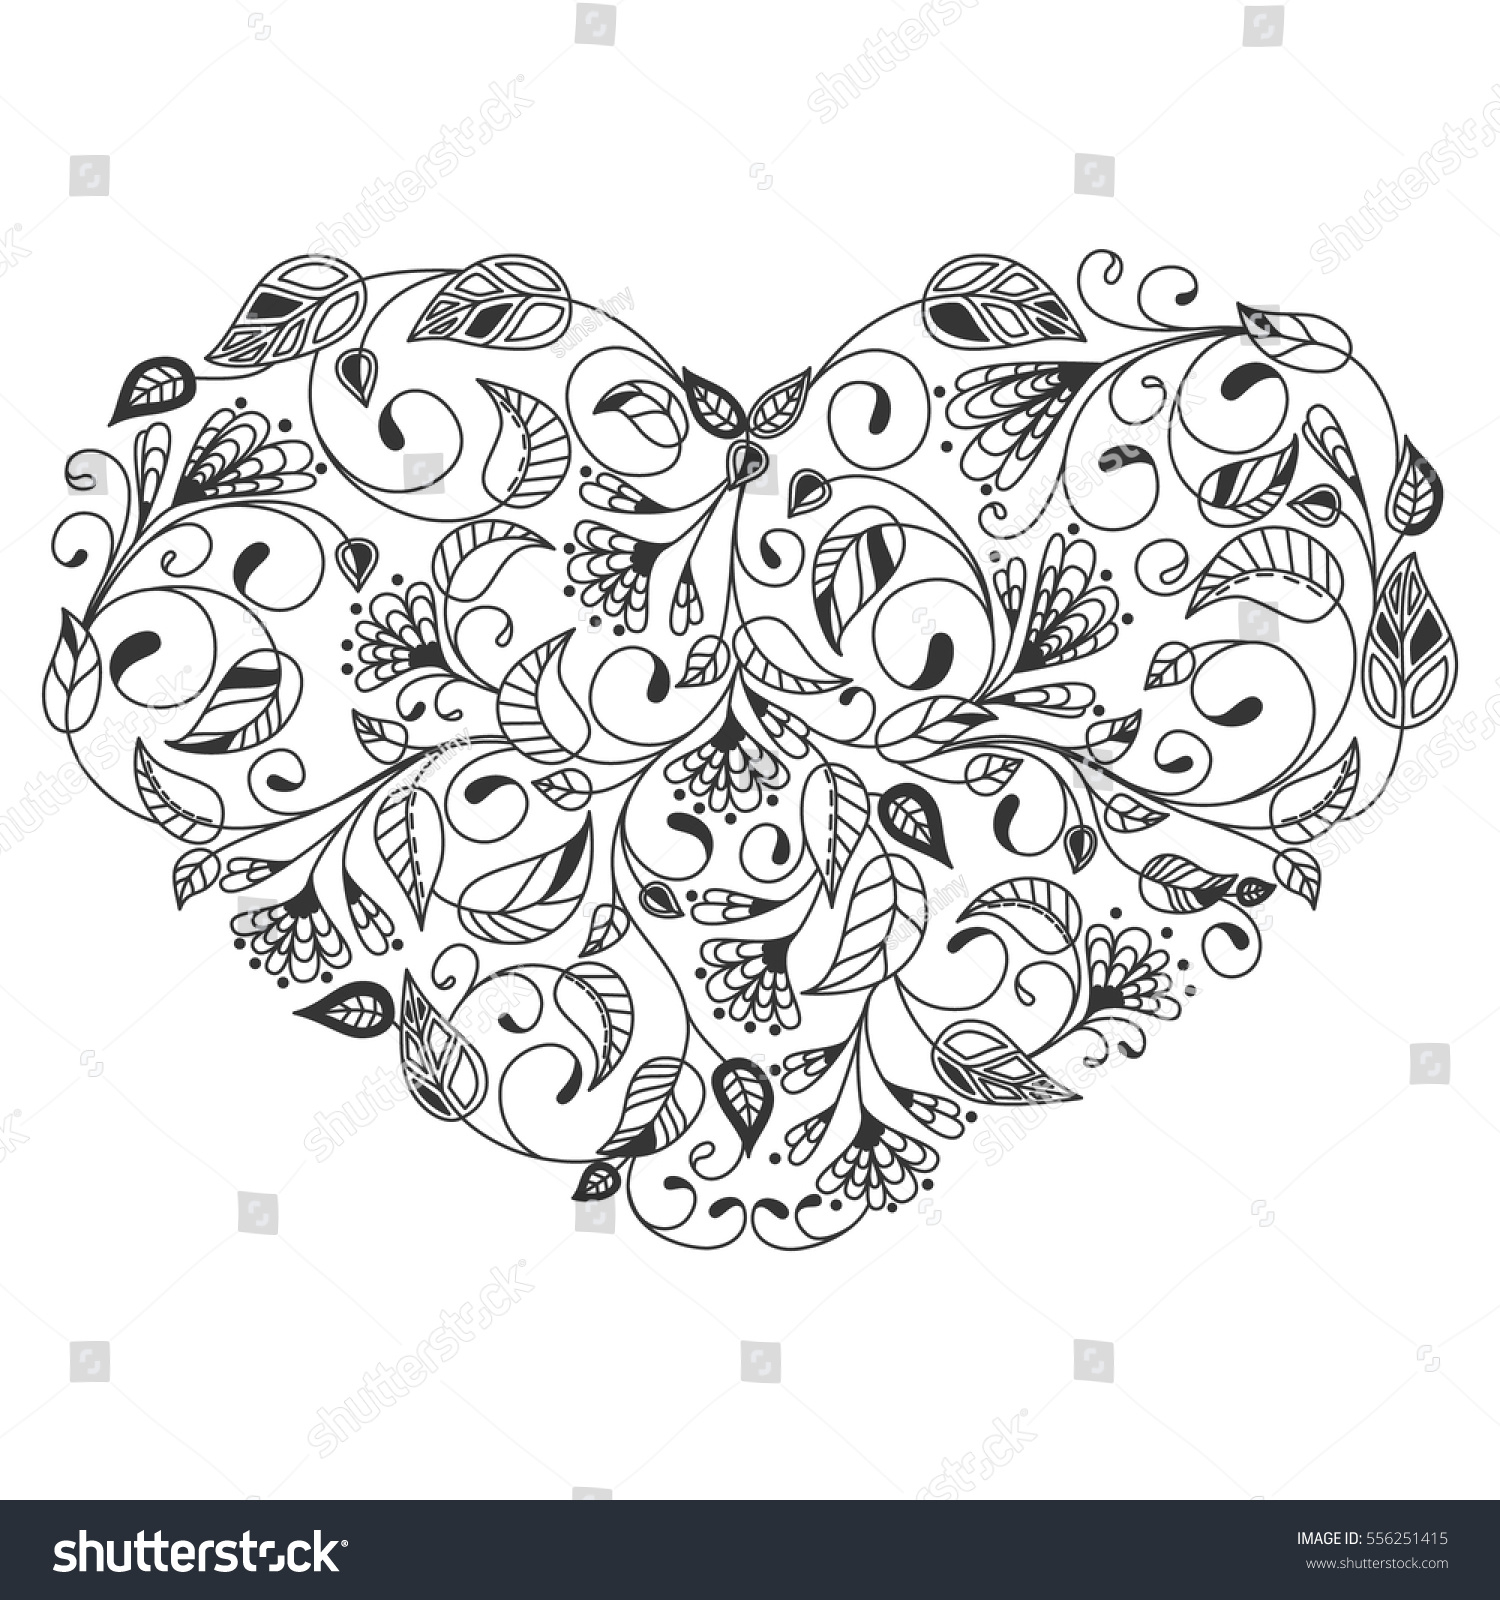 picture about Heart Coloring Pages Printable named Center Coloring Internet pages For Grownups Coloring Webpage Coloring Internet pages